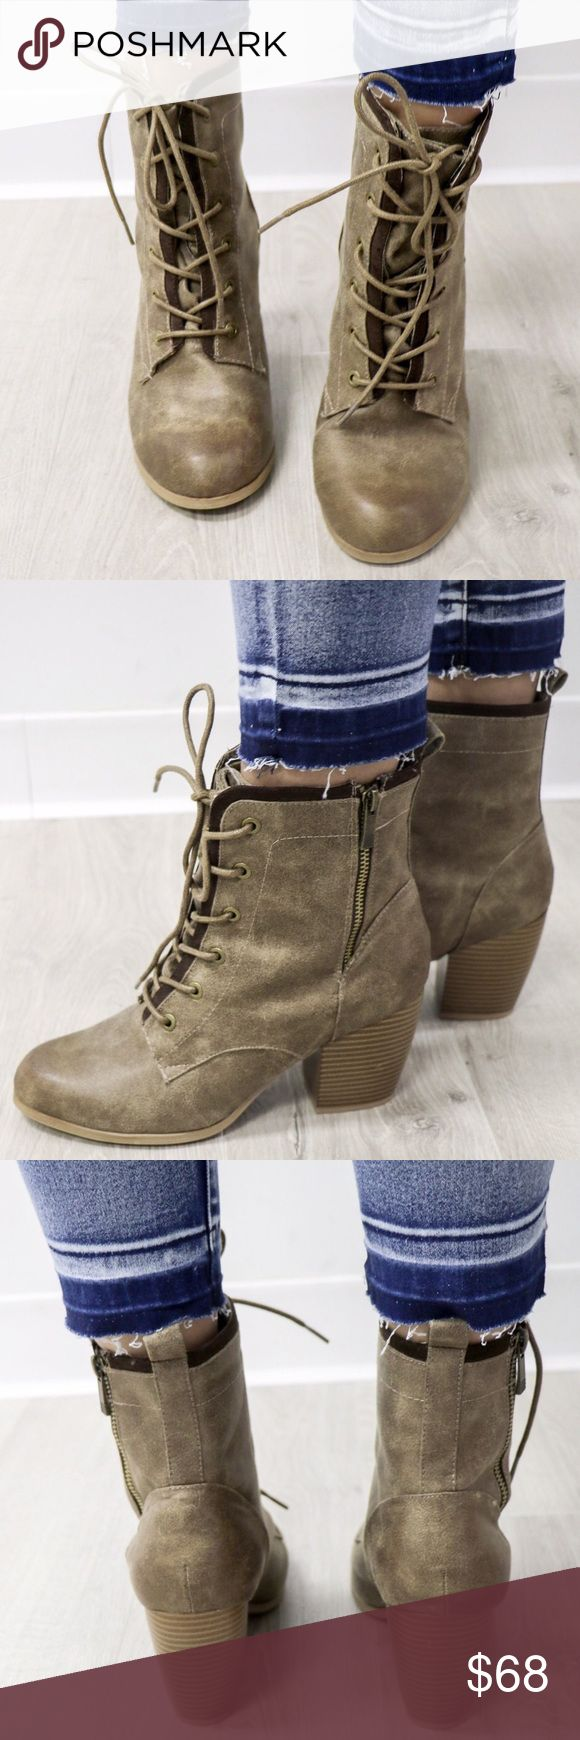 Taupe Lace Up Combat Boots Casual taupe block heel anke boots Heel 3in Taupe, lace up boots Zipper. No box Boutique Shoes Combat & Moto Boots